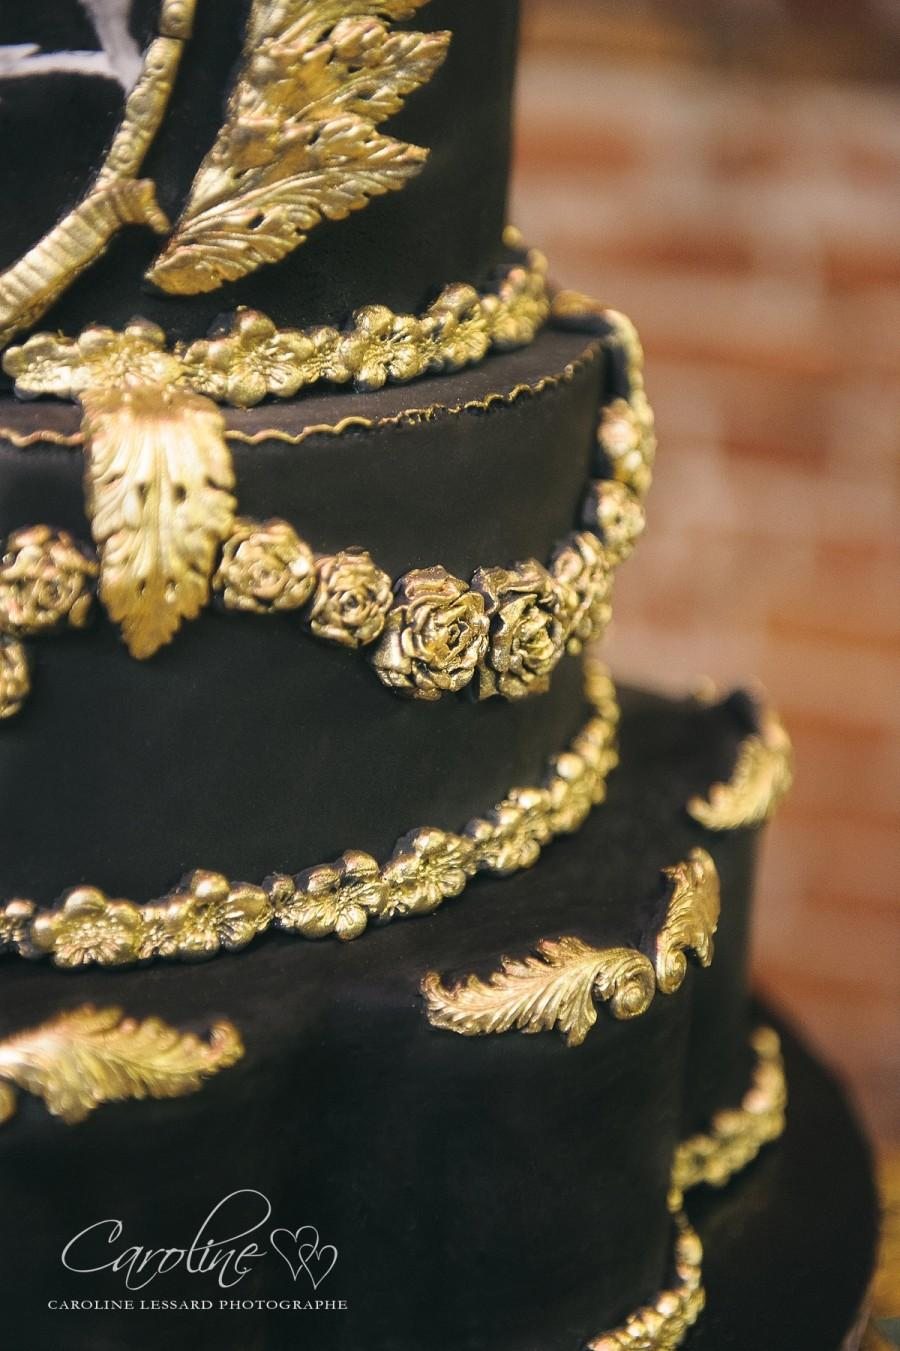 Black & Gold Wedding Cake #2512501 - Weddbook